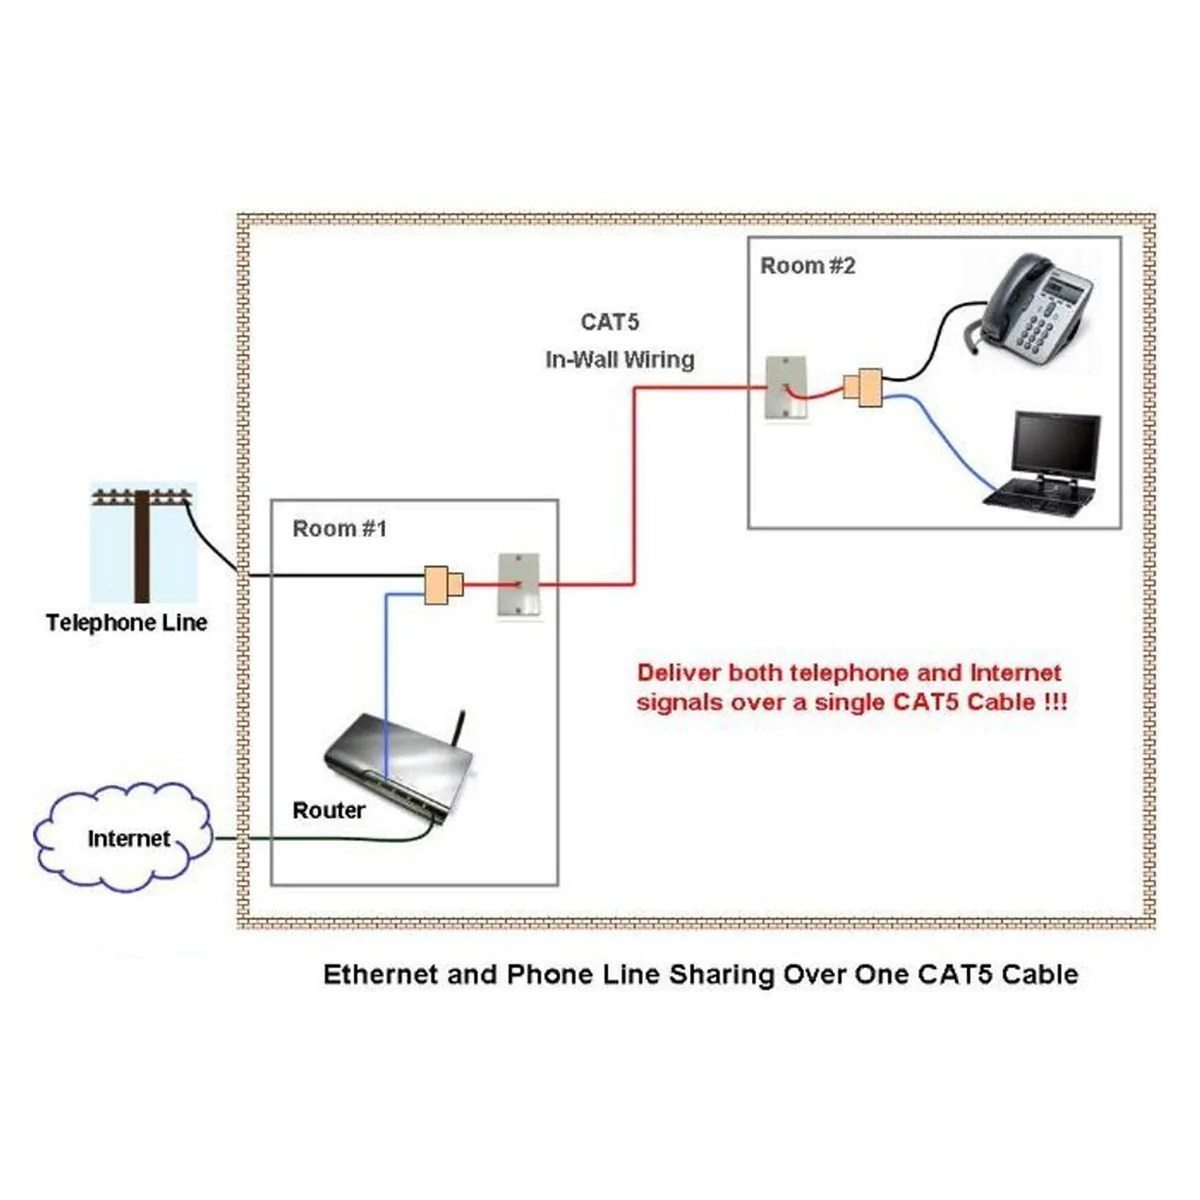 RJ45RJ11 Splitter Cable Sharing Kit for Ether and Phone Lines – Dualm